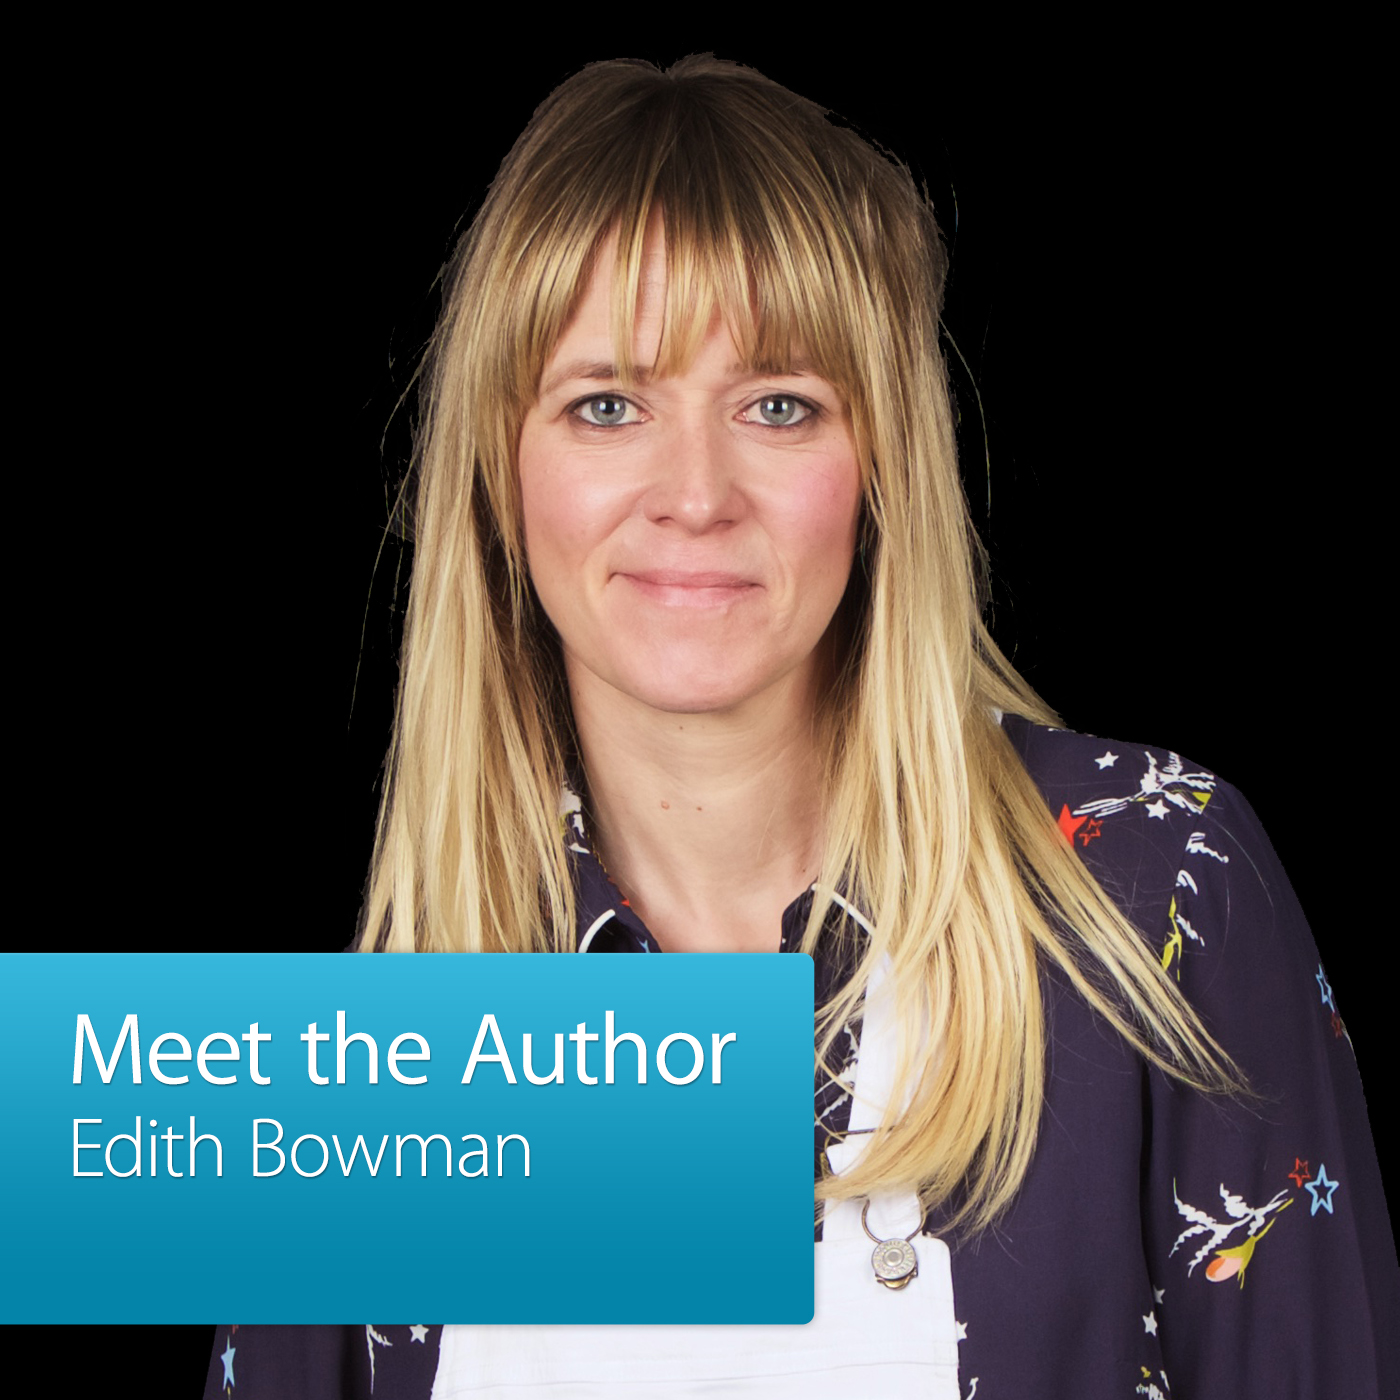 Edith Bowman: Meet the Author